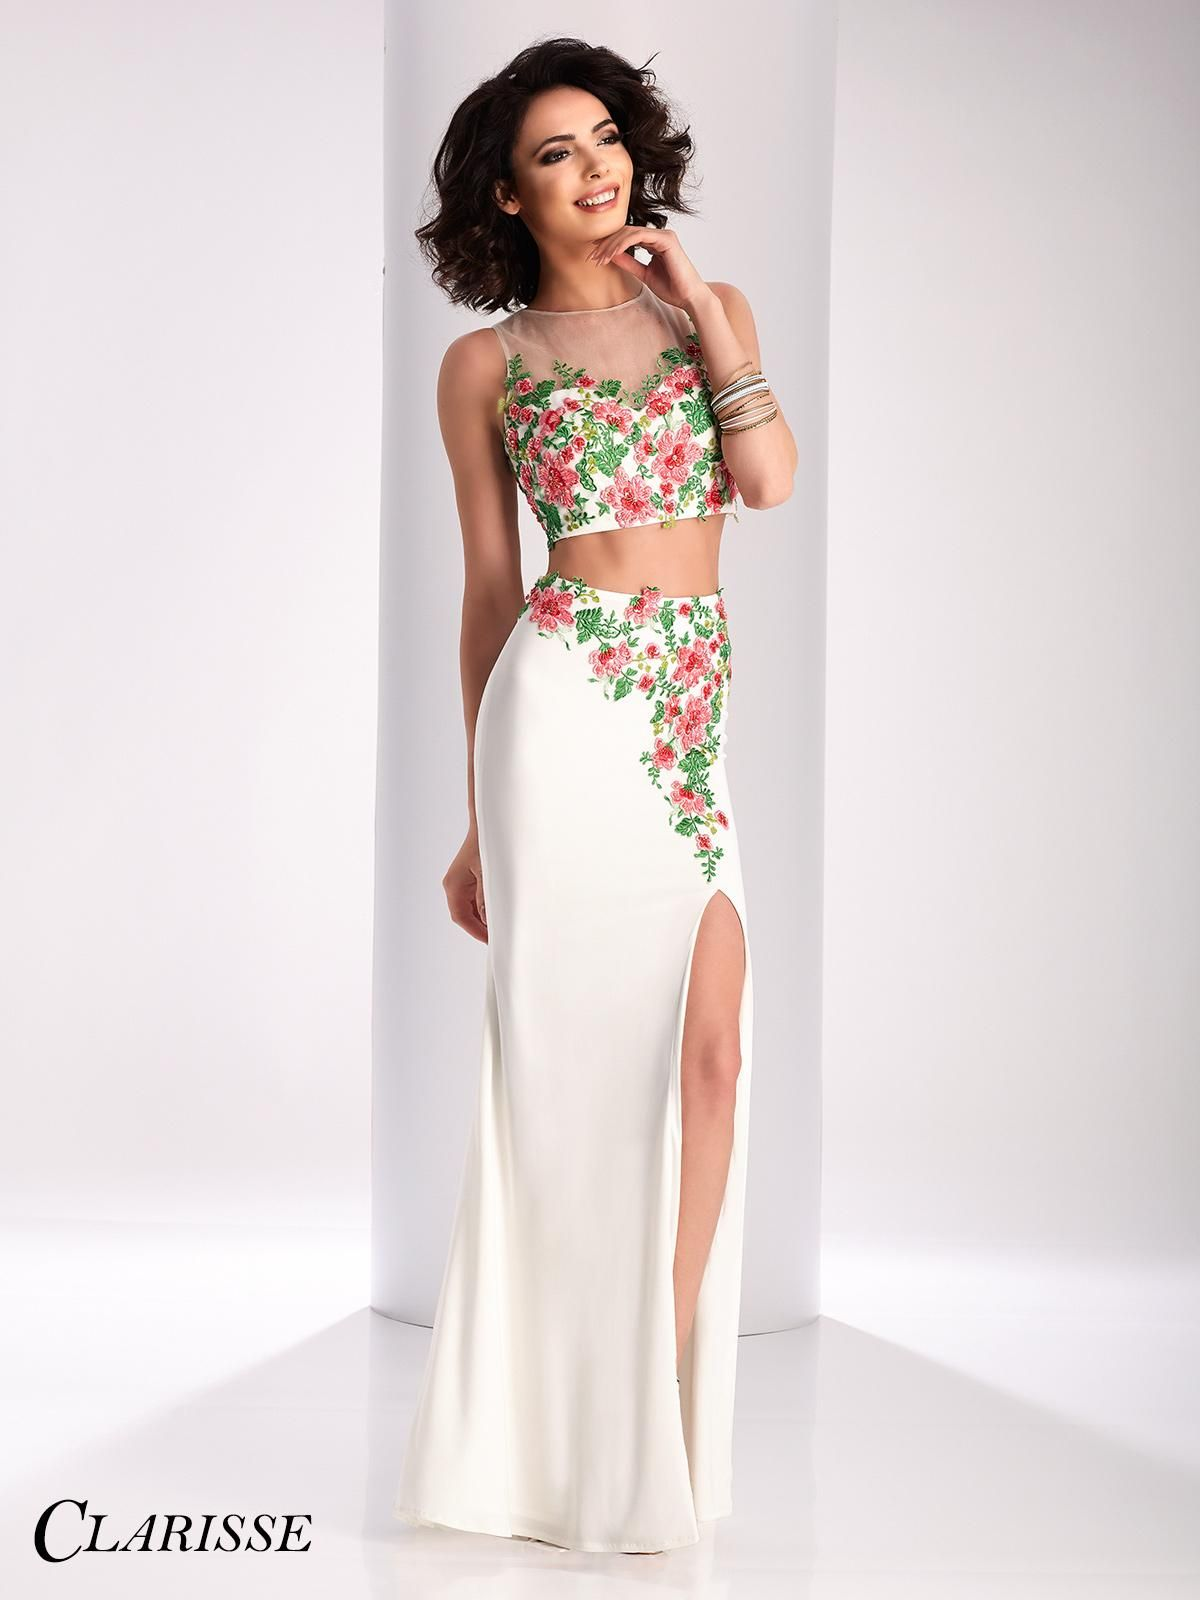 a2171256d85 Clarisse Two Piece Floral Prom Dress 3056. Buy this sweet and simple prom  dress with